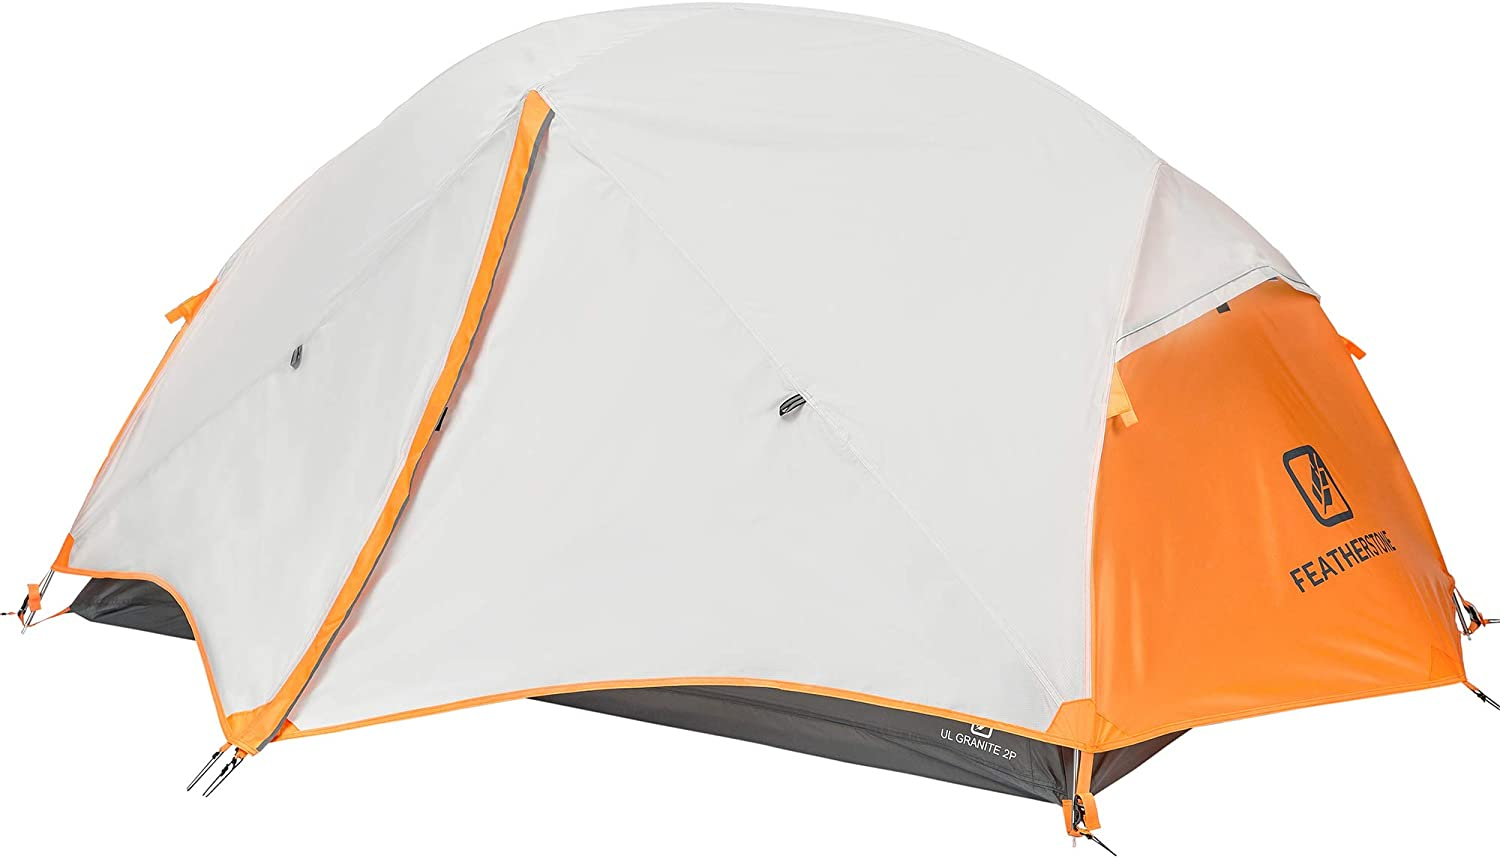 Featherstone UL 2P Backpacking Tent